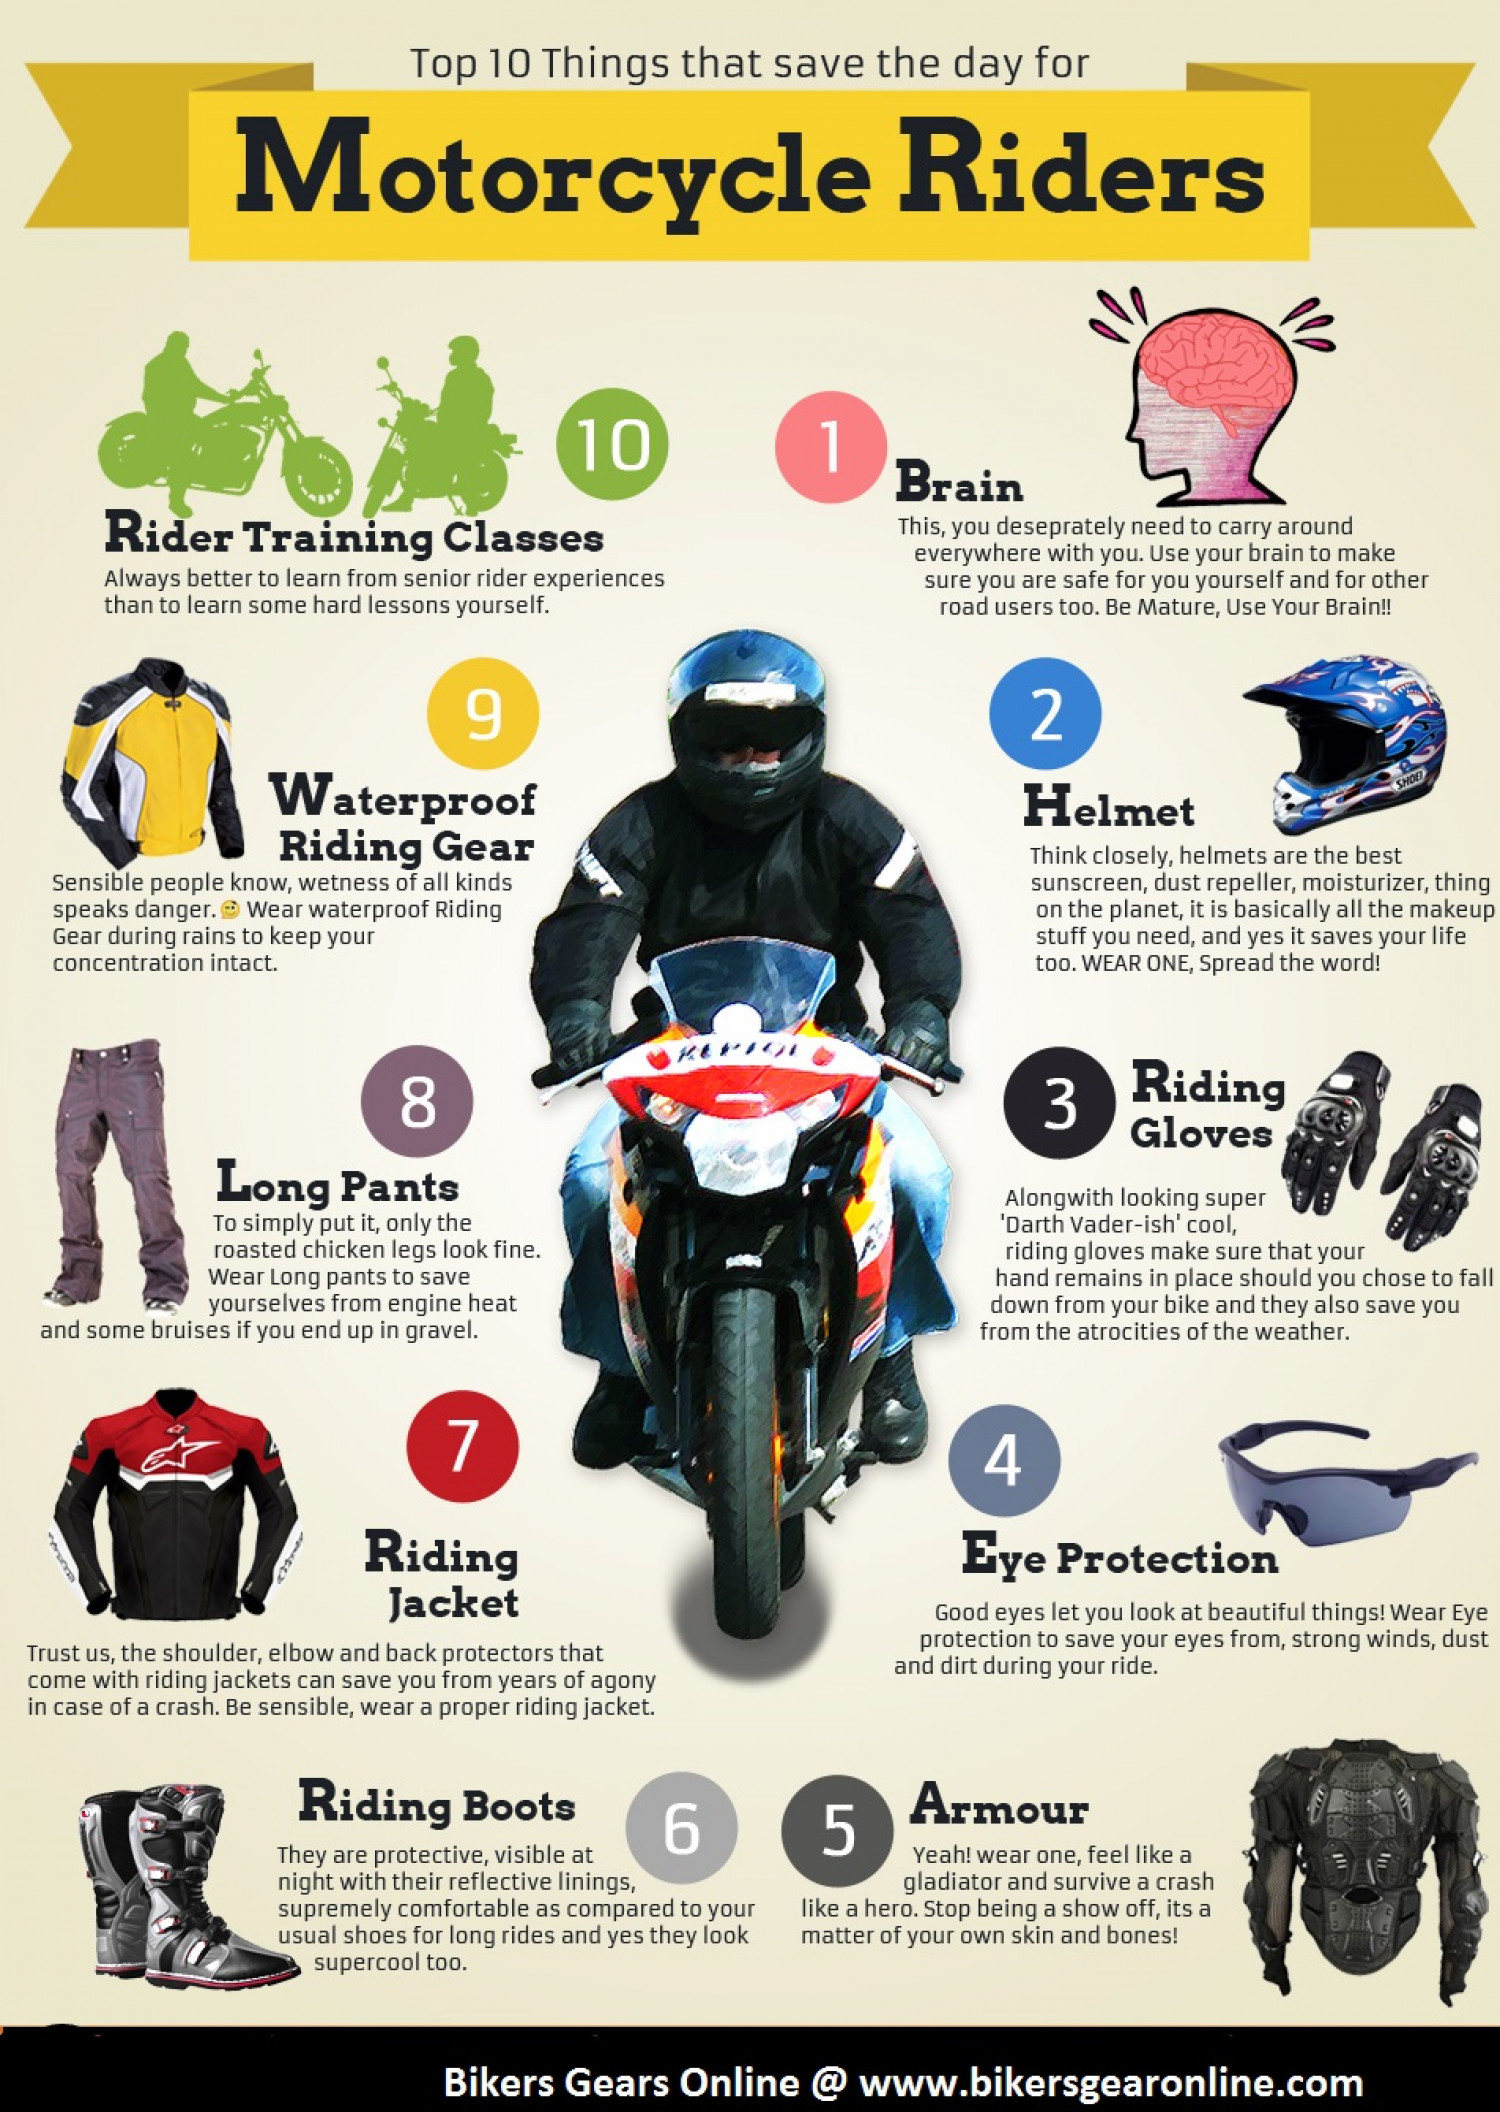 Top 10 Motorcycle Safety Tips Infographic